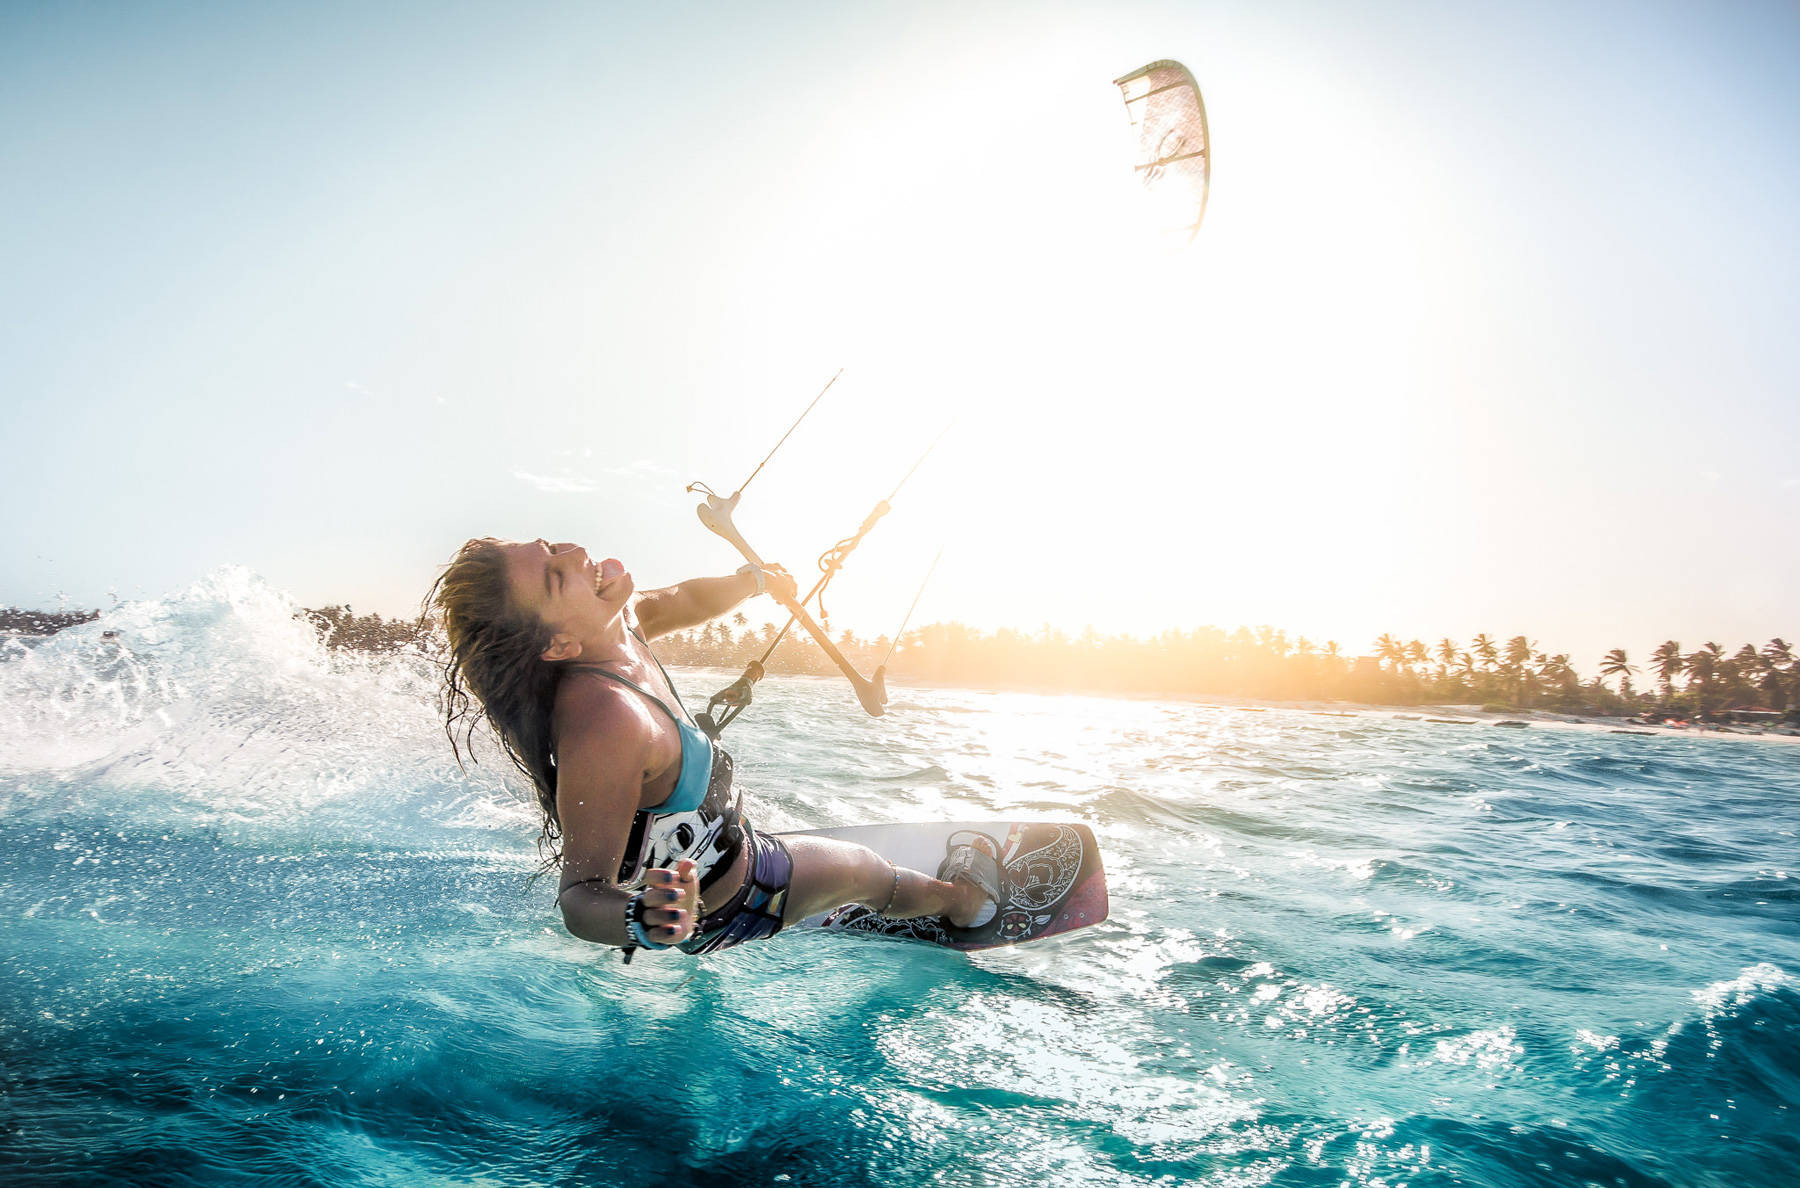 Essential Tips for Kitesurfing Photography